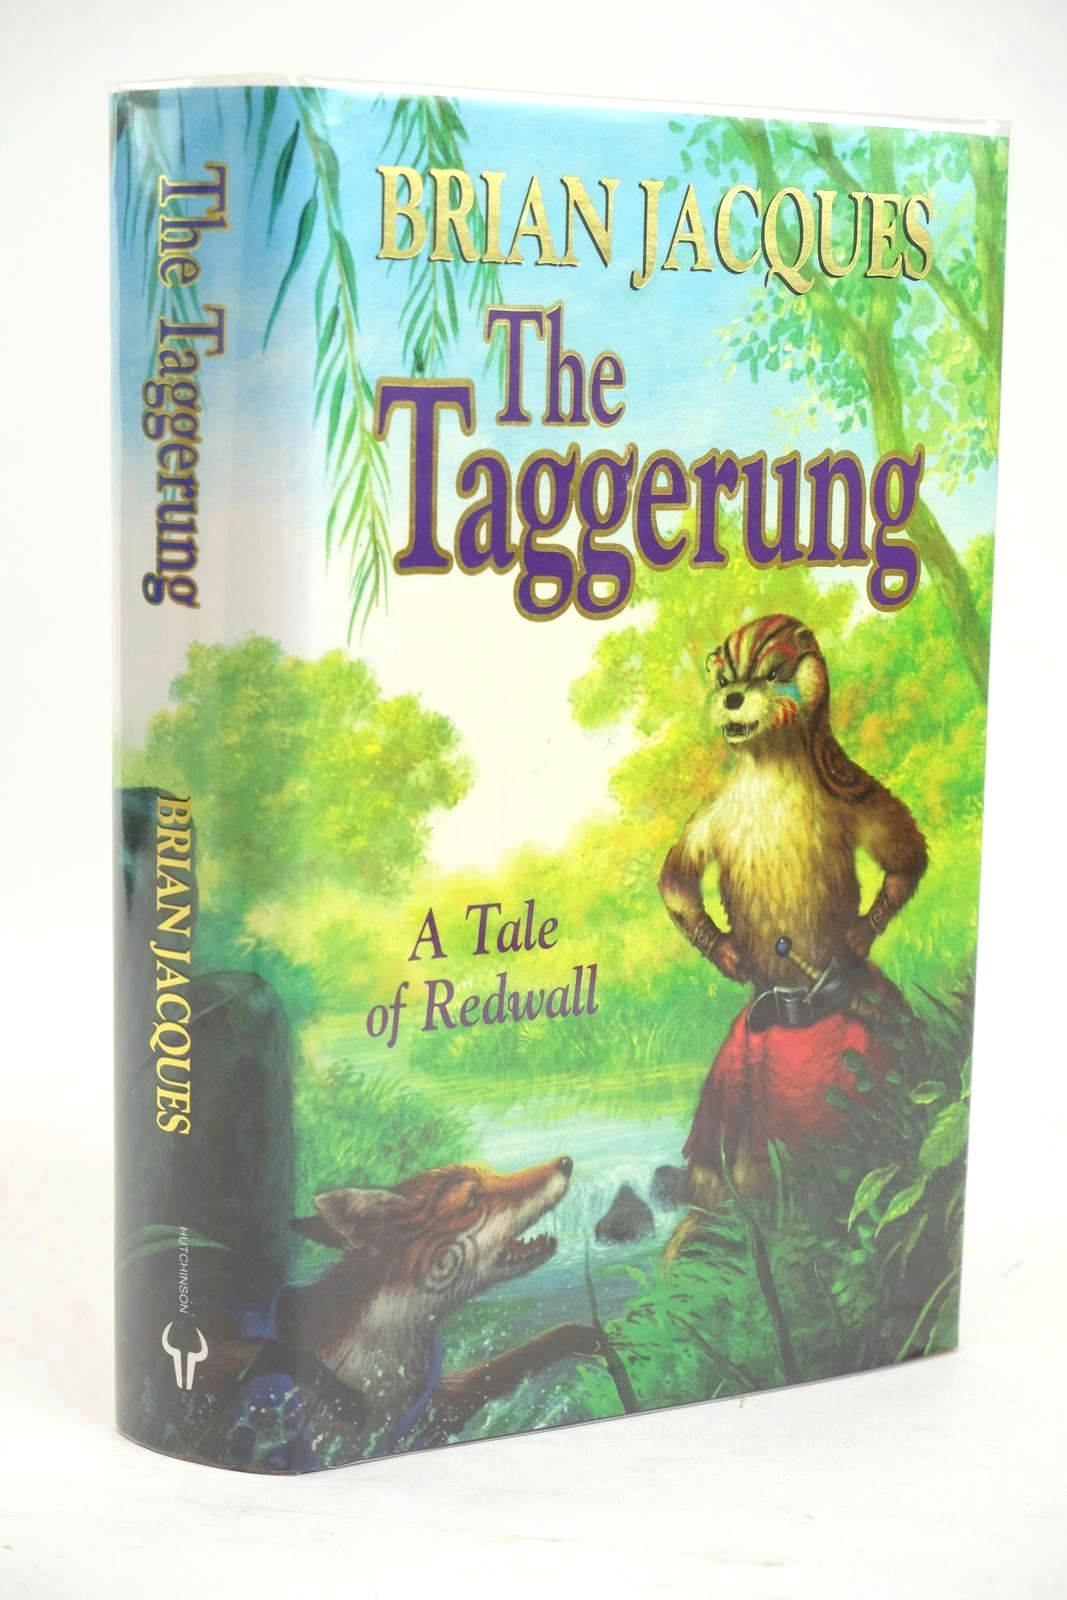 Photo of THE TAGGERUNG written by Jacques, Brian illustrated by Standley, Peter published by Hutchinson (STOCK CODE: 1319404)  for sale by Stella & Rose's Books